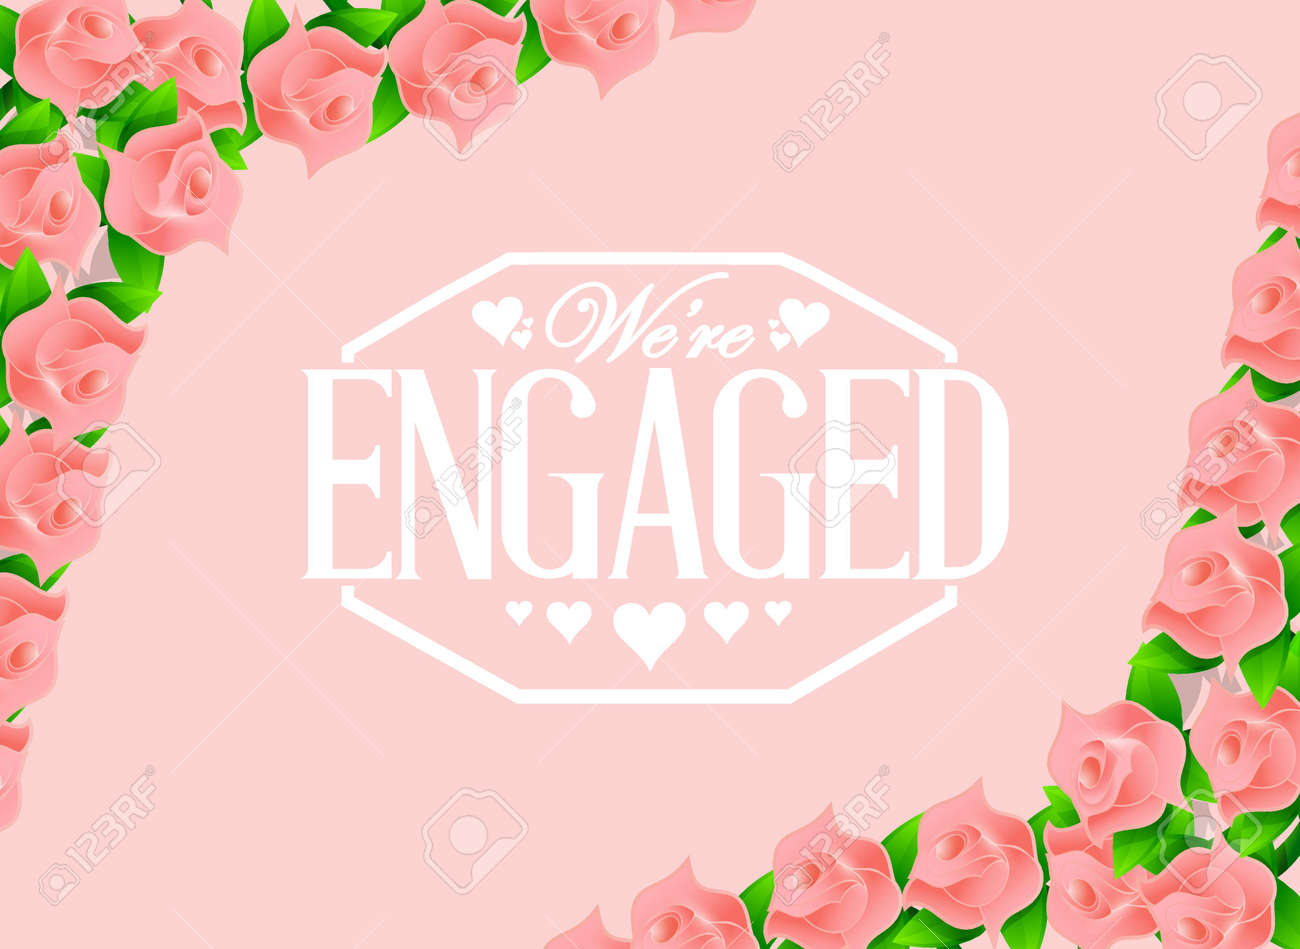 we are engaged stamp over pink roses background illustration